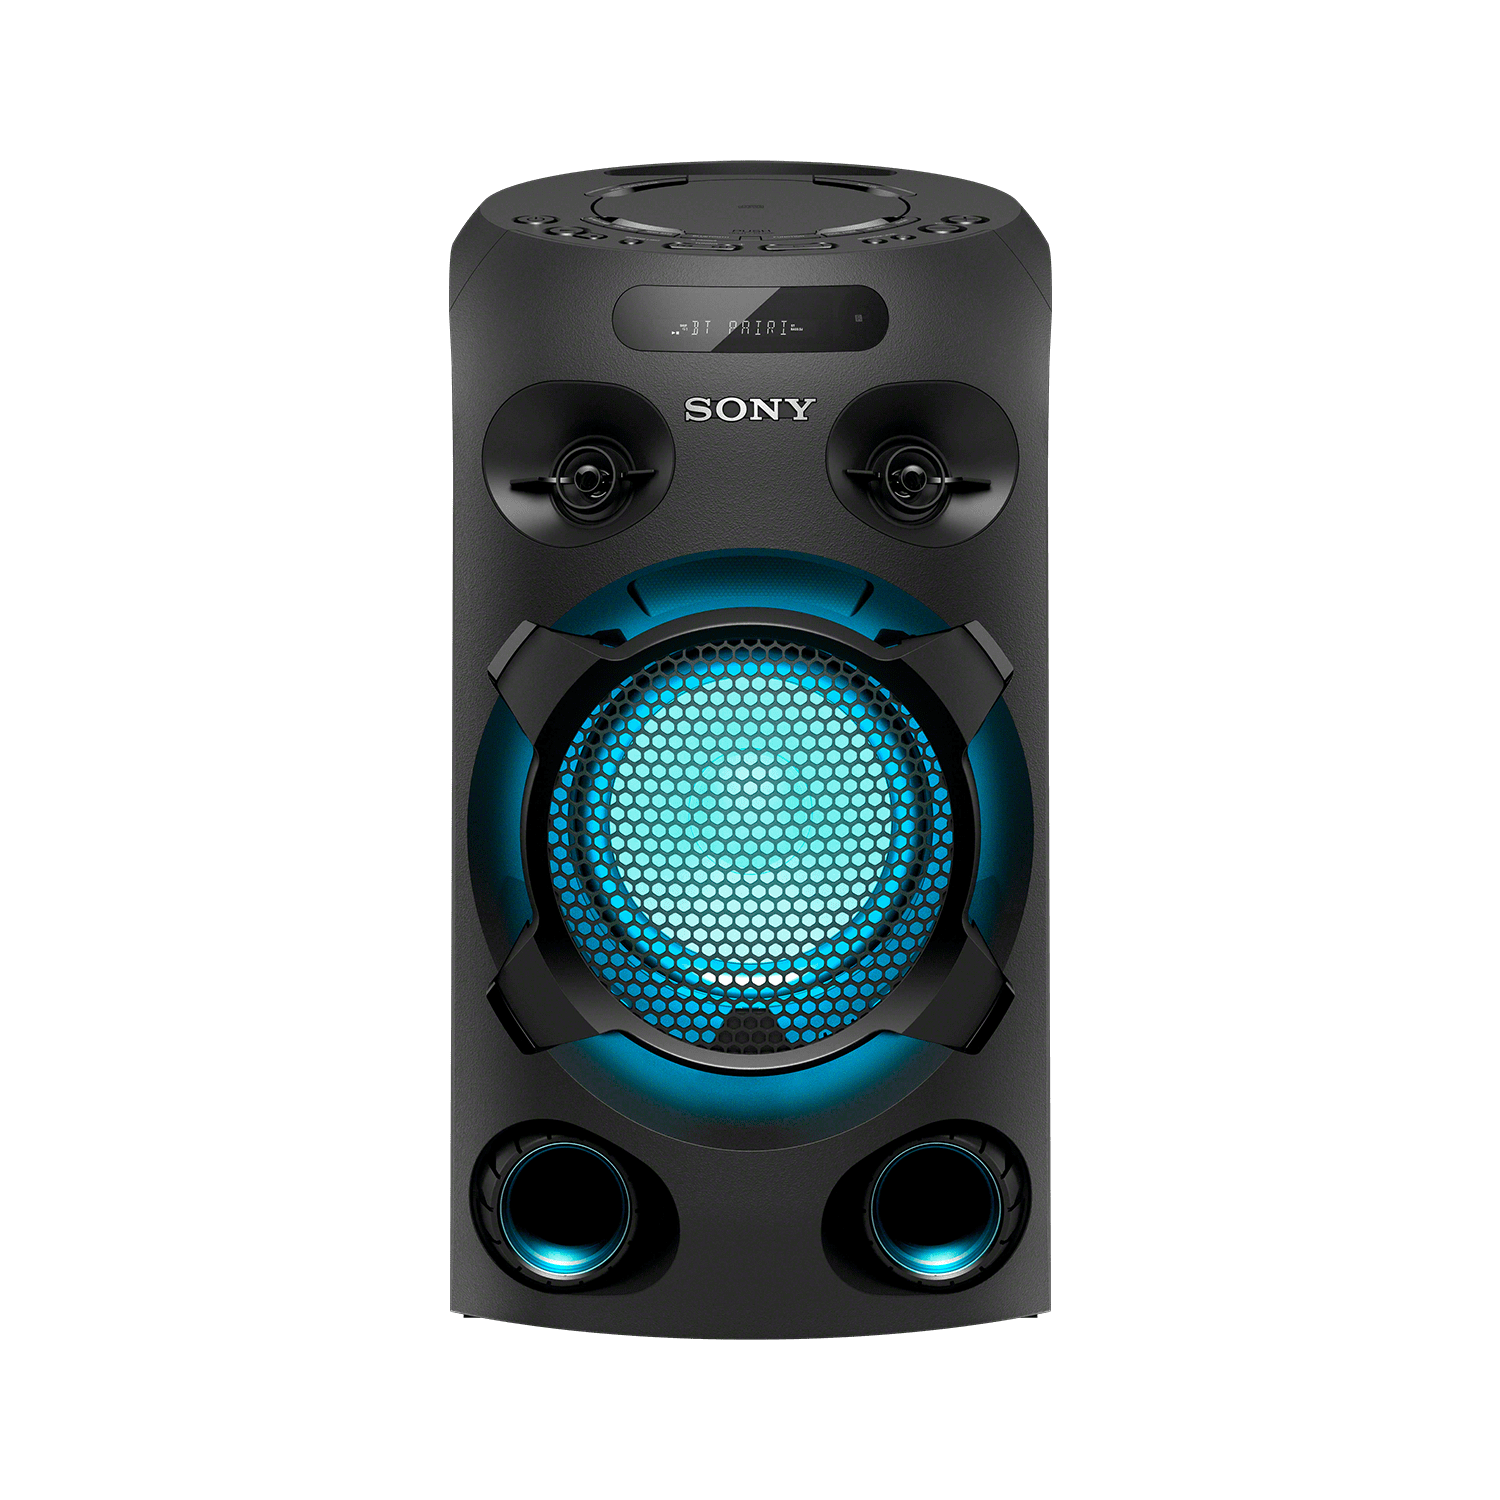 V02 High Power Audio System with BLUETOOTH Technology, , product-image